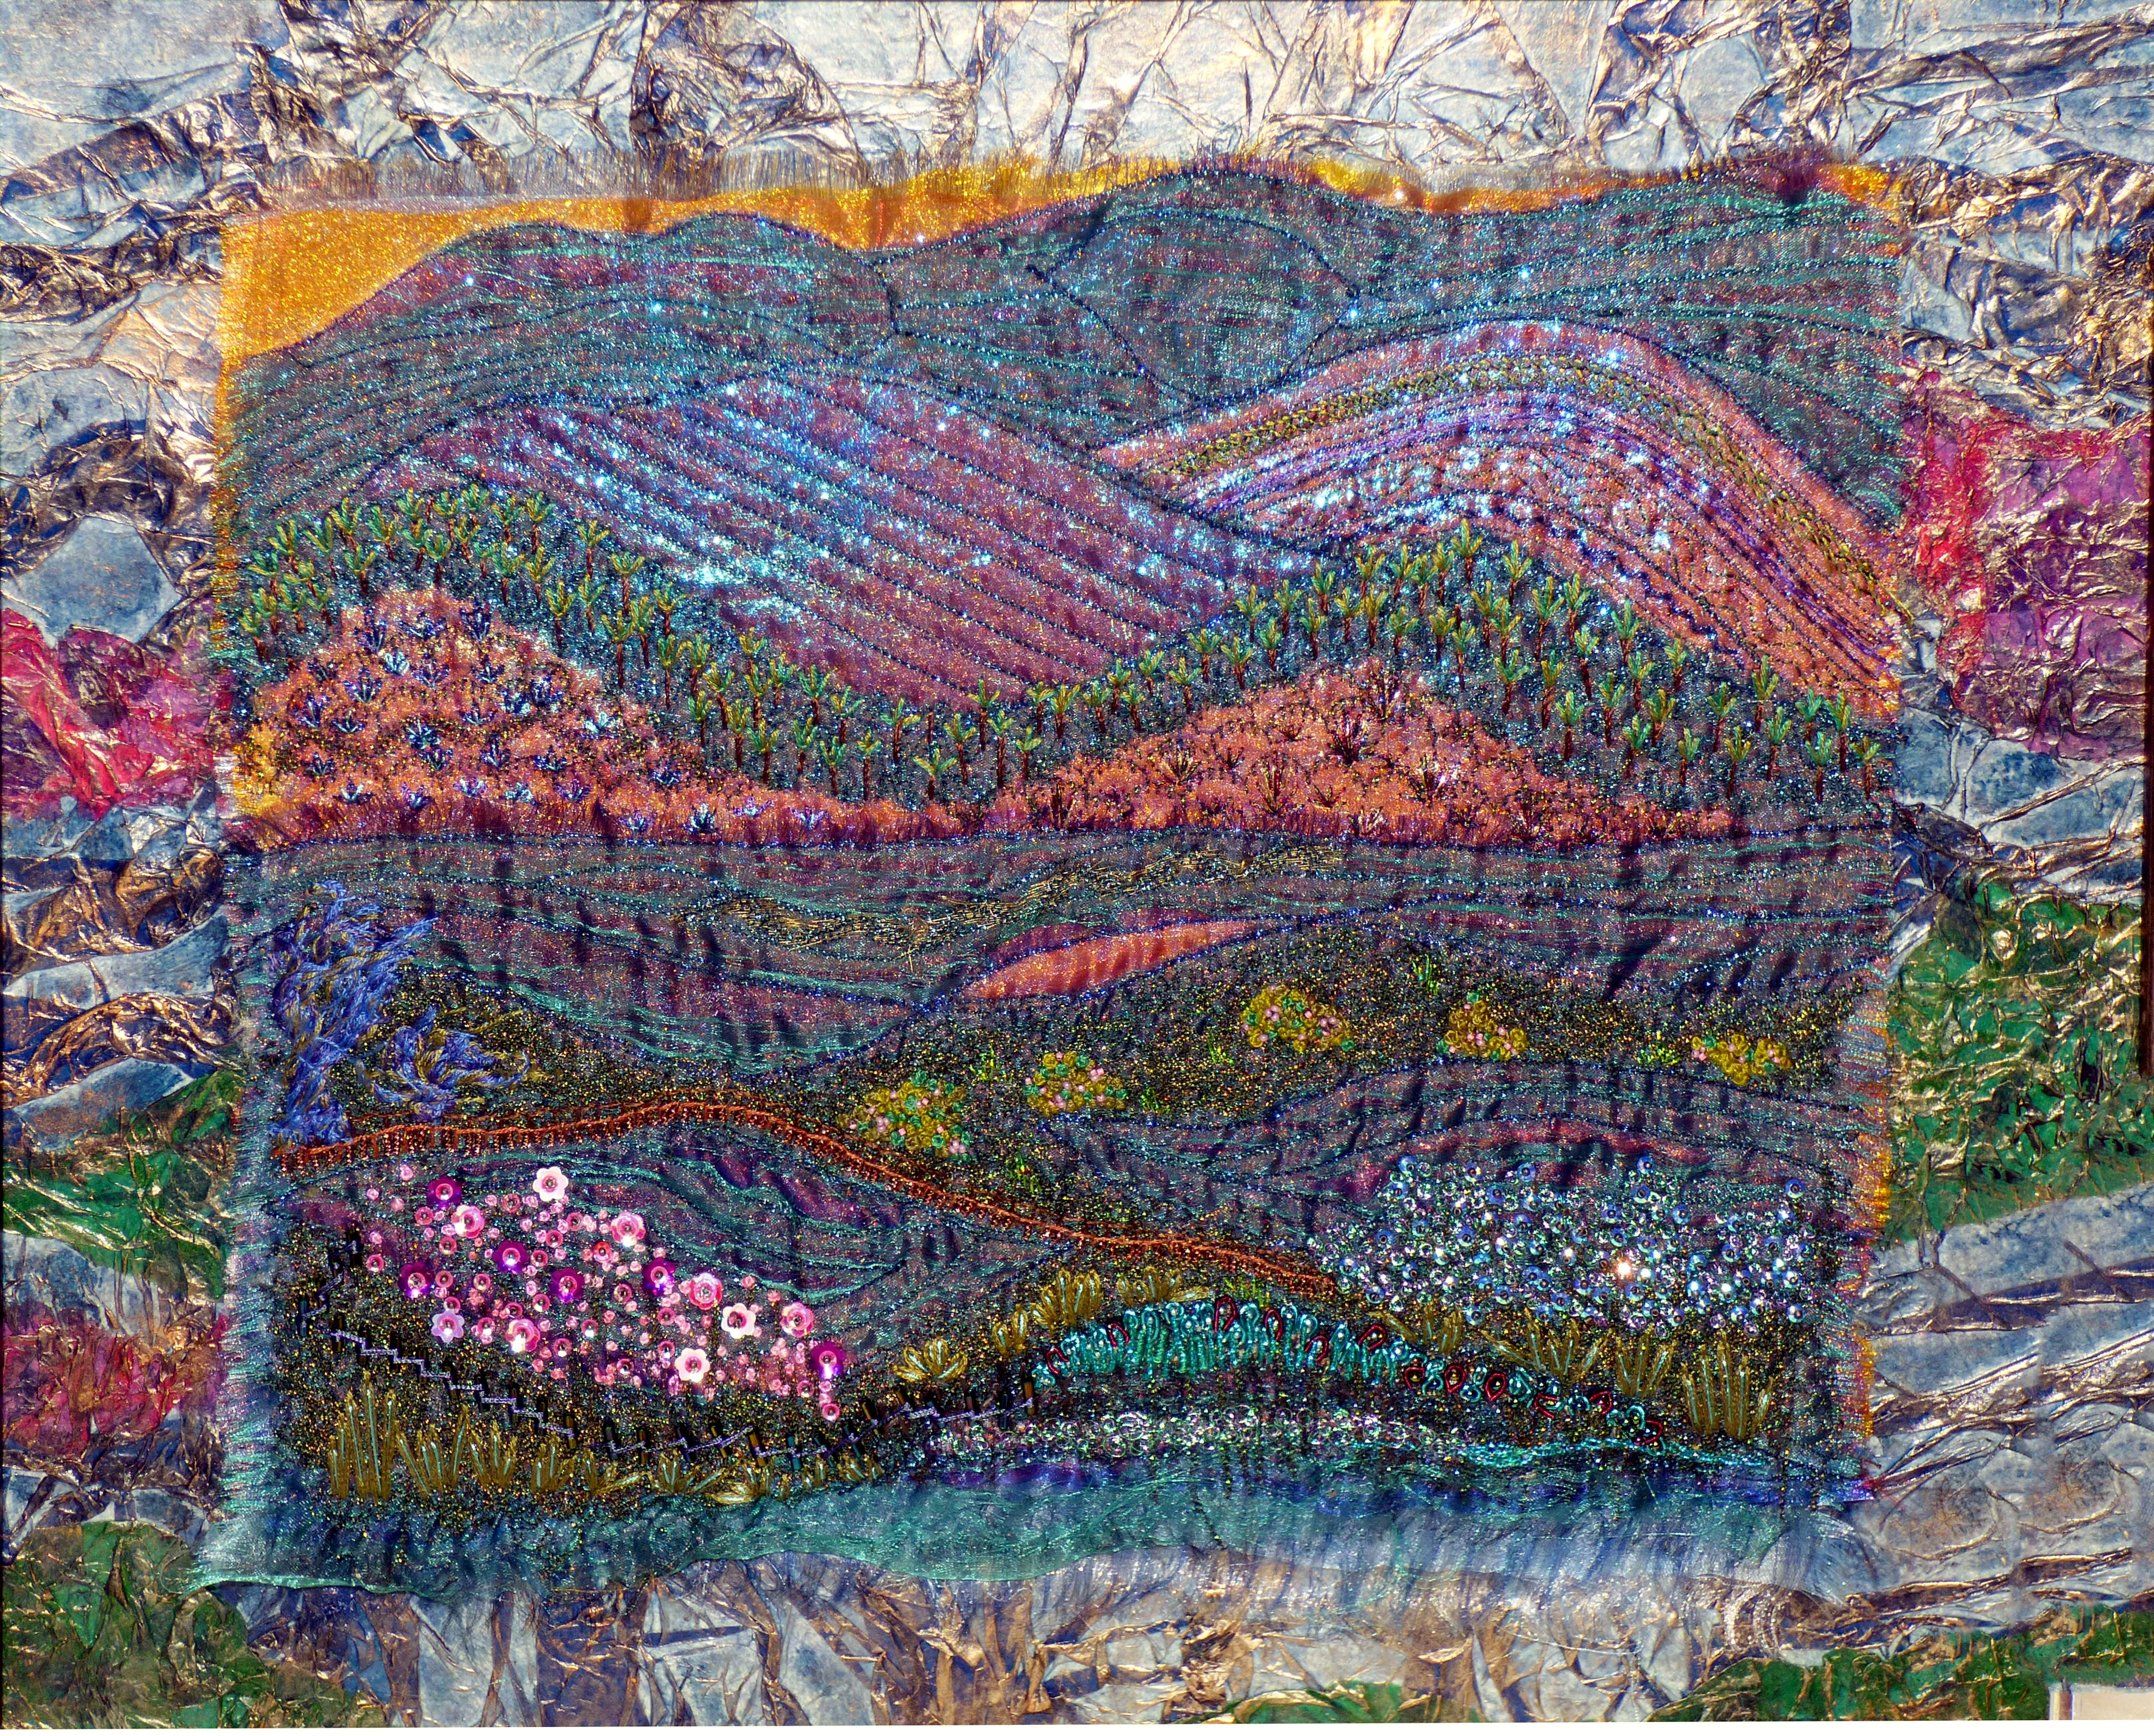 SNOWDONIA by Wendy Cartwright, N.Wales EG, mixed media mounted with tissue paper